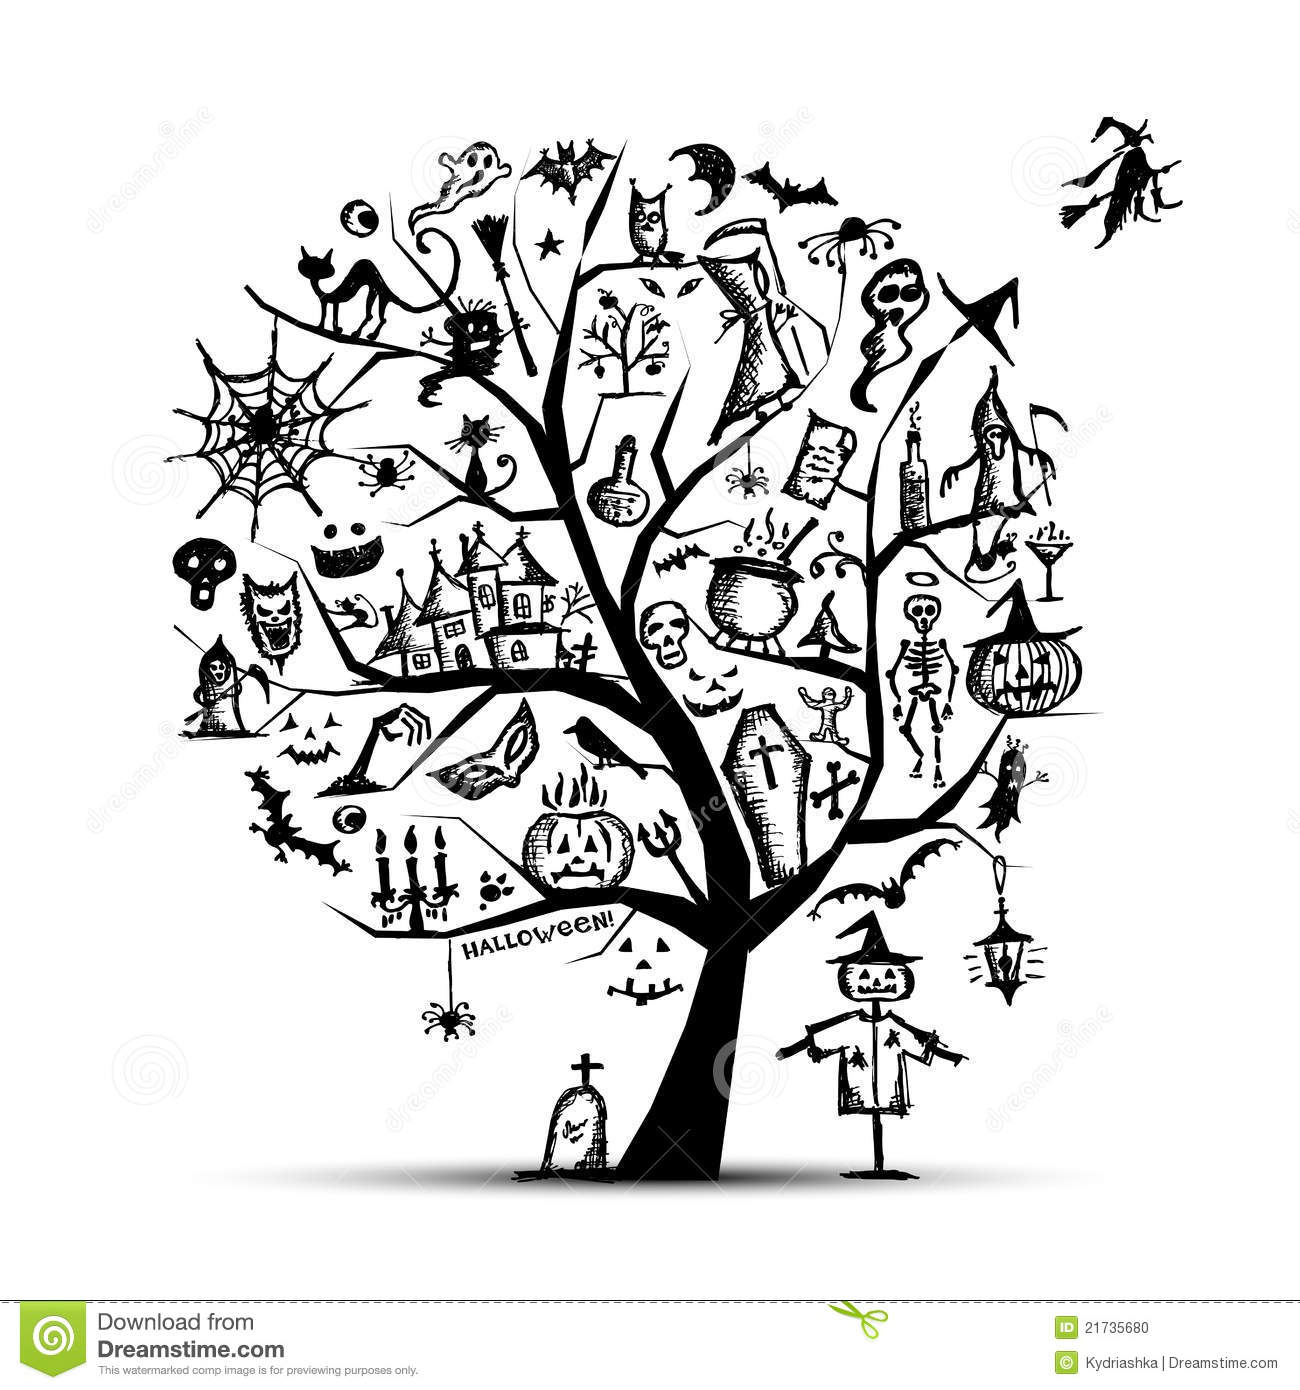 Haunted Graveyard also C88e256e46ce81c2 likewise Stock Images Spider Web Background Image20418674 likewise Stock Photo Halloween Tree Your Design Image21735680 also Search. on spooky house sketch